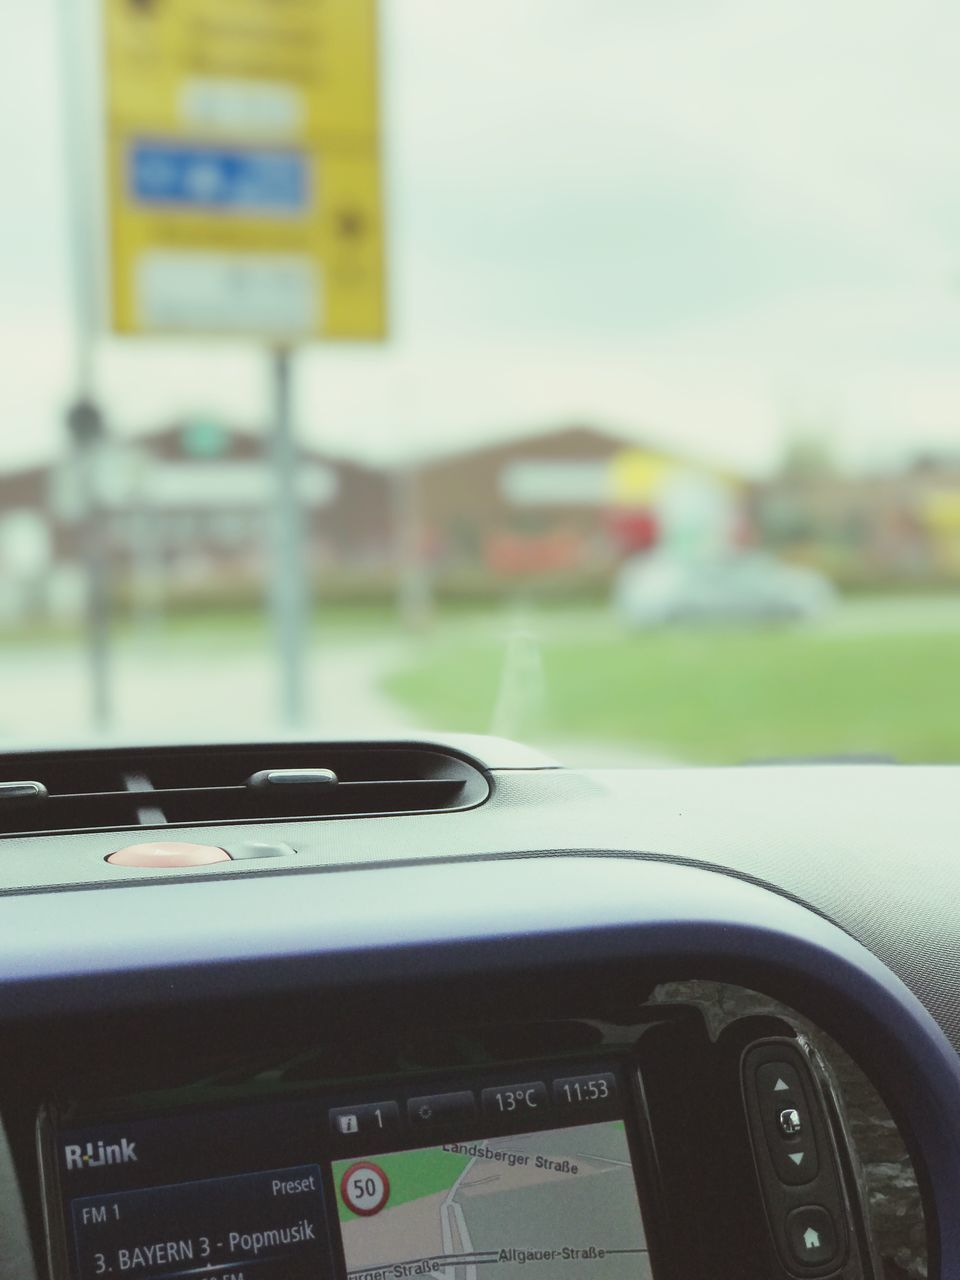 car, land vehicle, dashboard, windshield, text, transportation, focus on foreground, steering wheel, no people, day, close-up, outdoors, speedometer